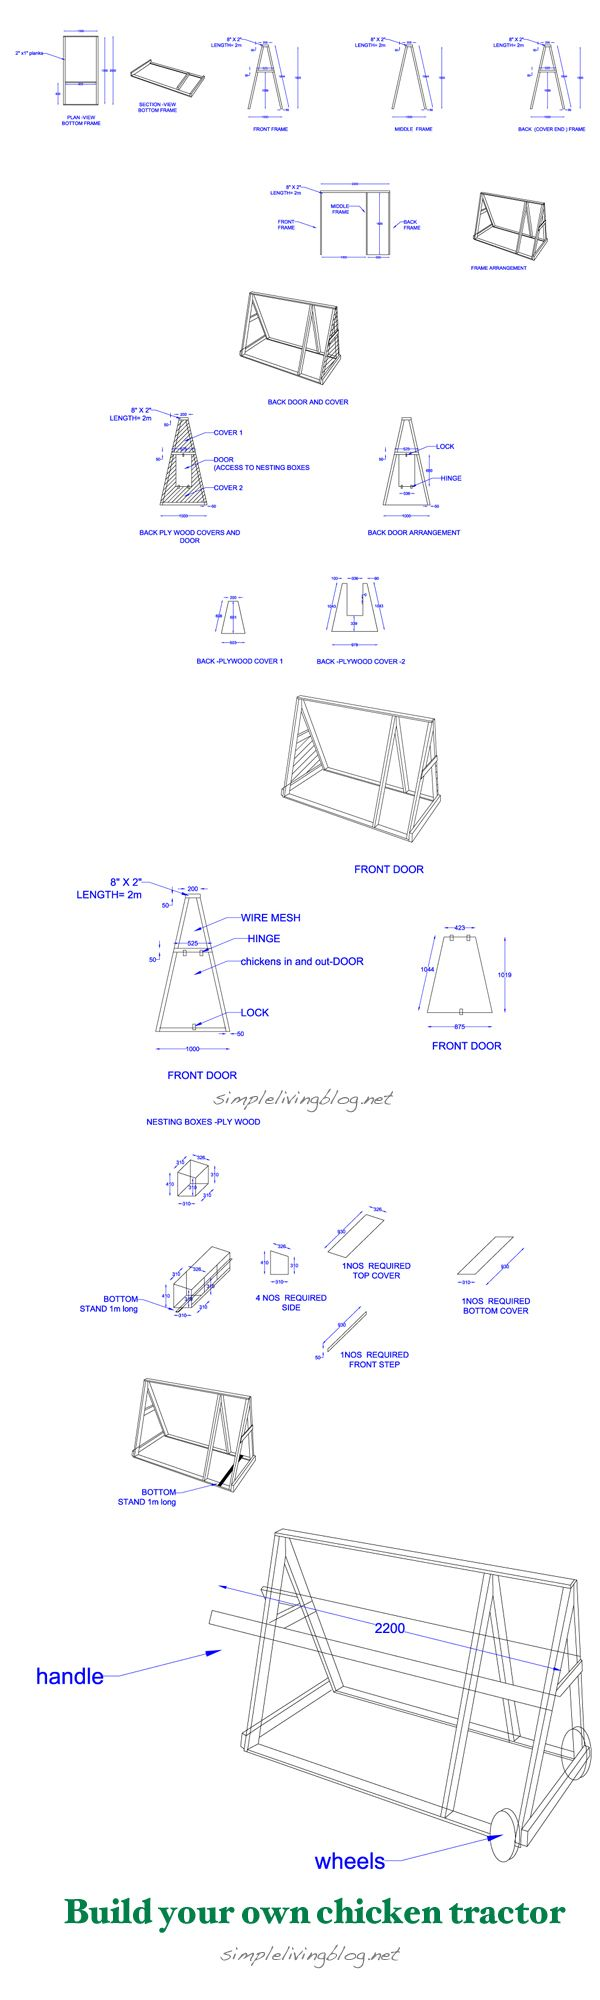 Free plans to build your own chicken tractor | random | Pinterest ...